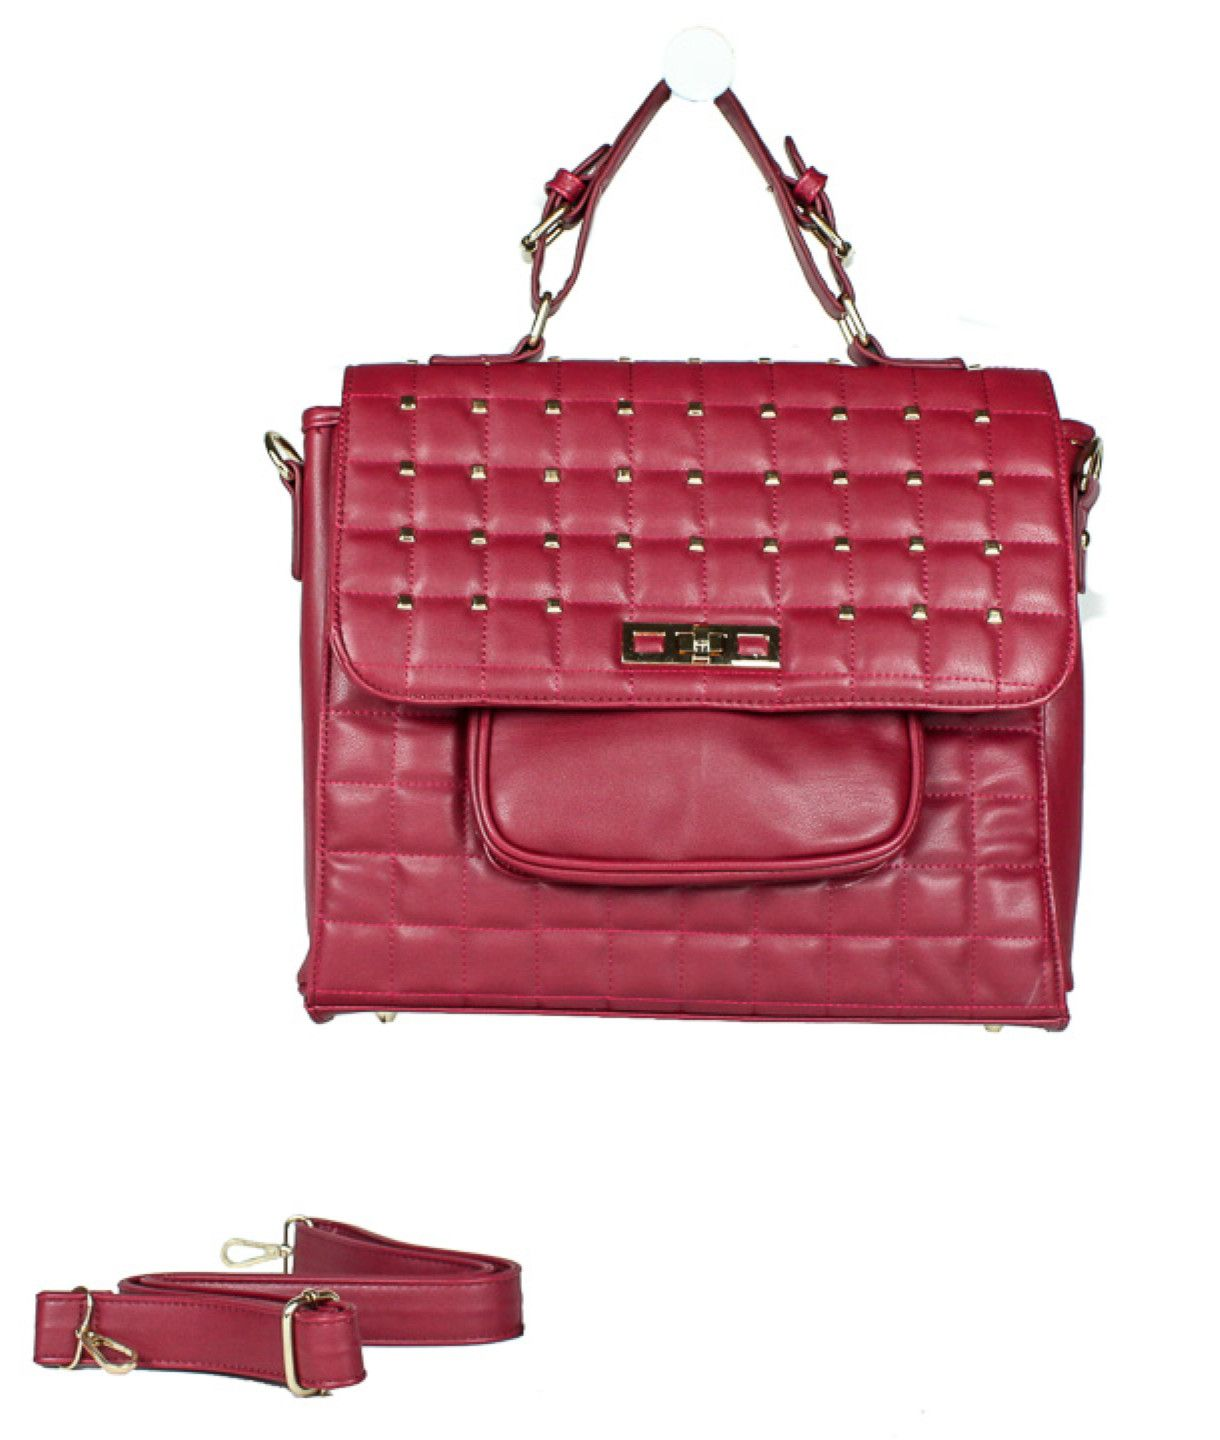 QUILTED STUDDED RED BAG from wholesalefashionshoes.net